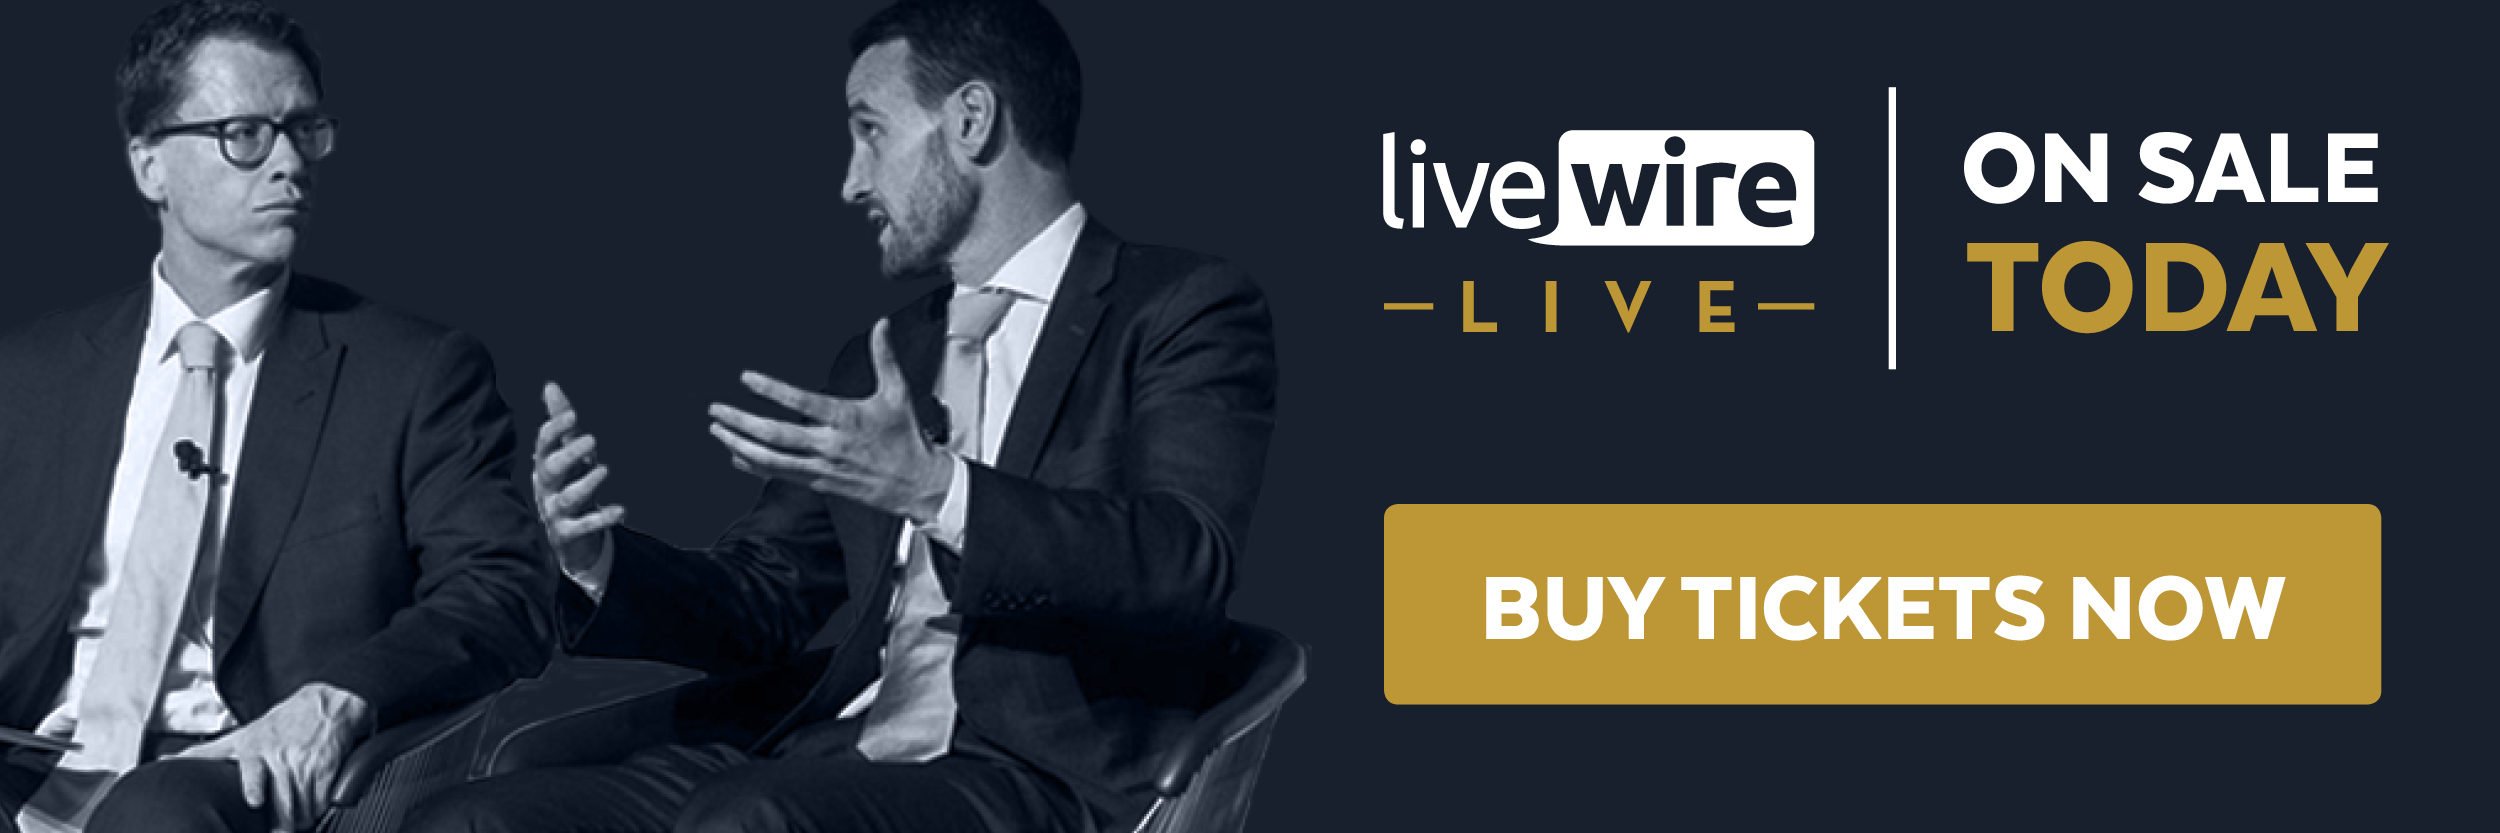 Lwl18 on sale today banner